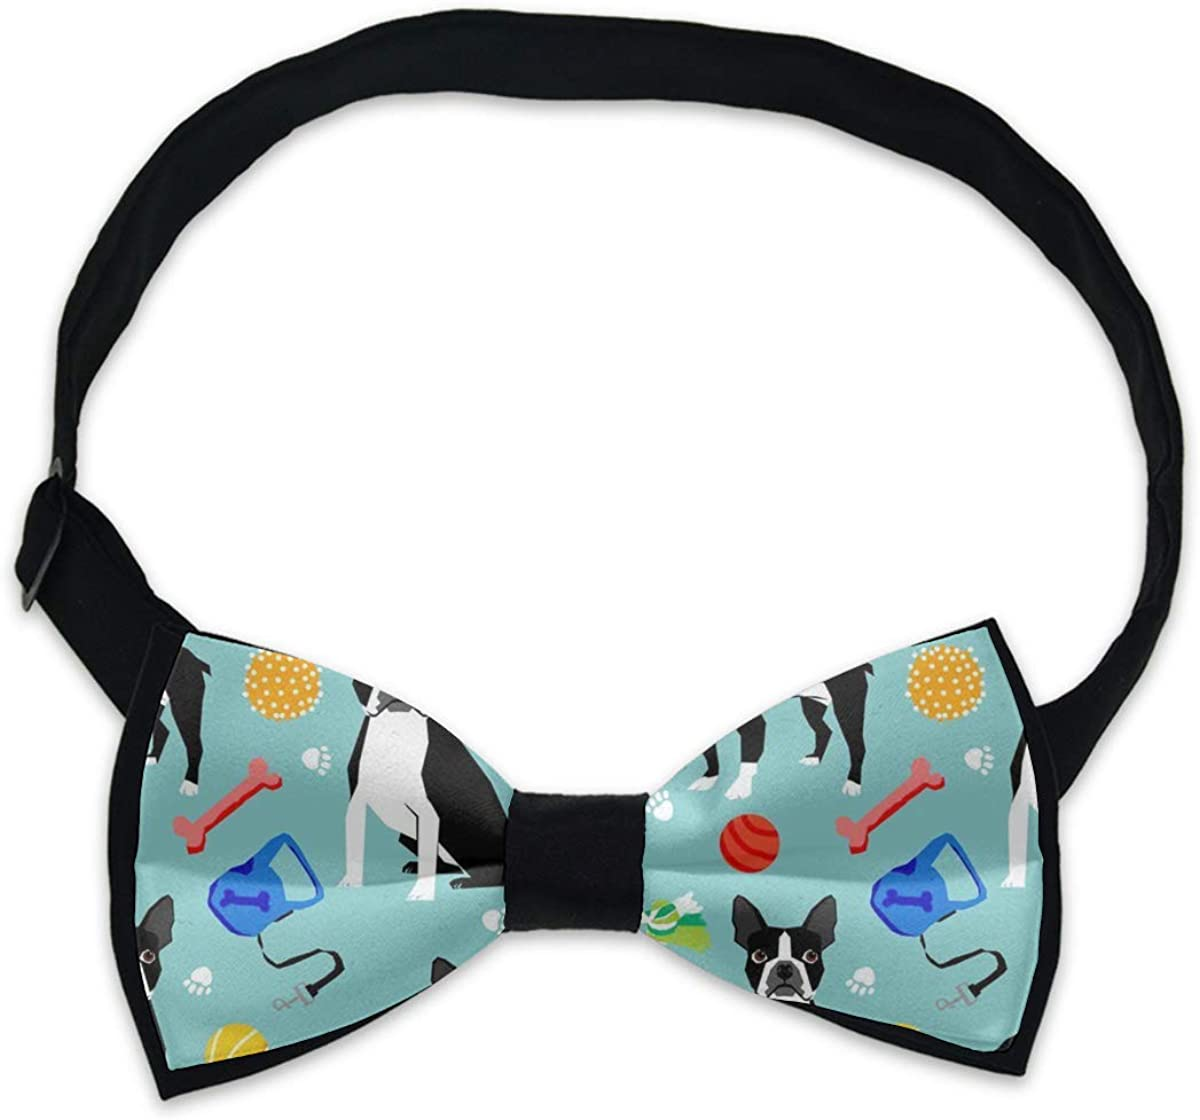 Cute Pre-tied Bow Tie Adjustable Bowties for Adult & Children Boston Terrier Toys Dog